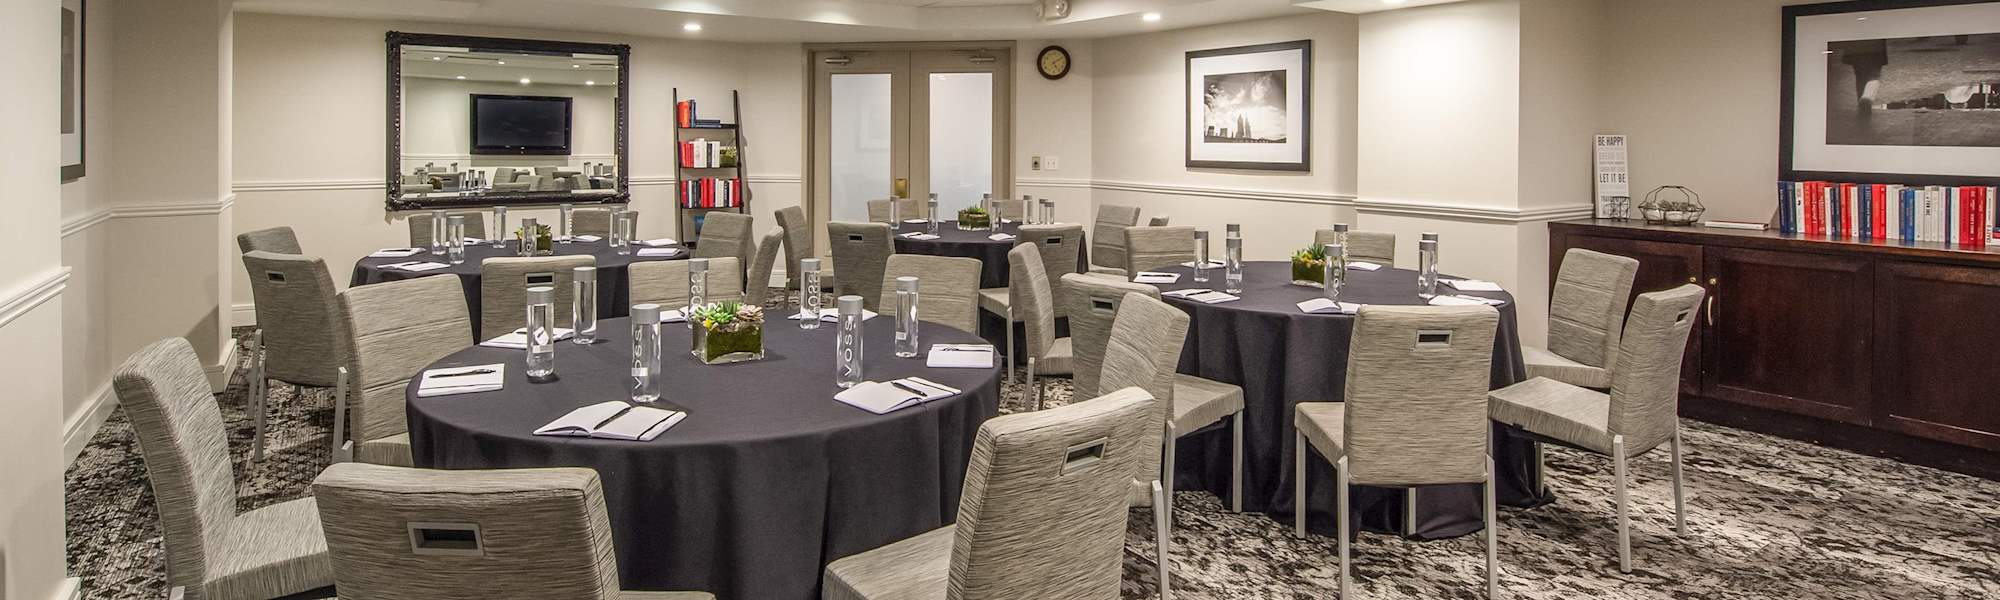 Meetings and Events Facilities at King George Hotel - A Greystone Hotel, Union Square San Francisco